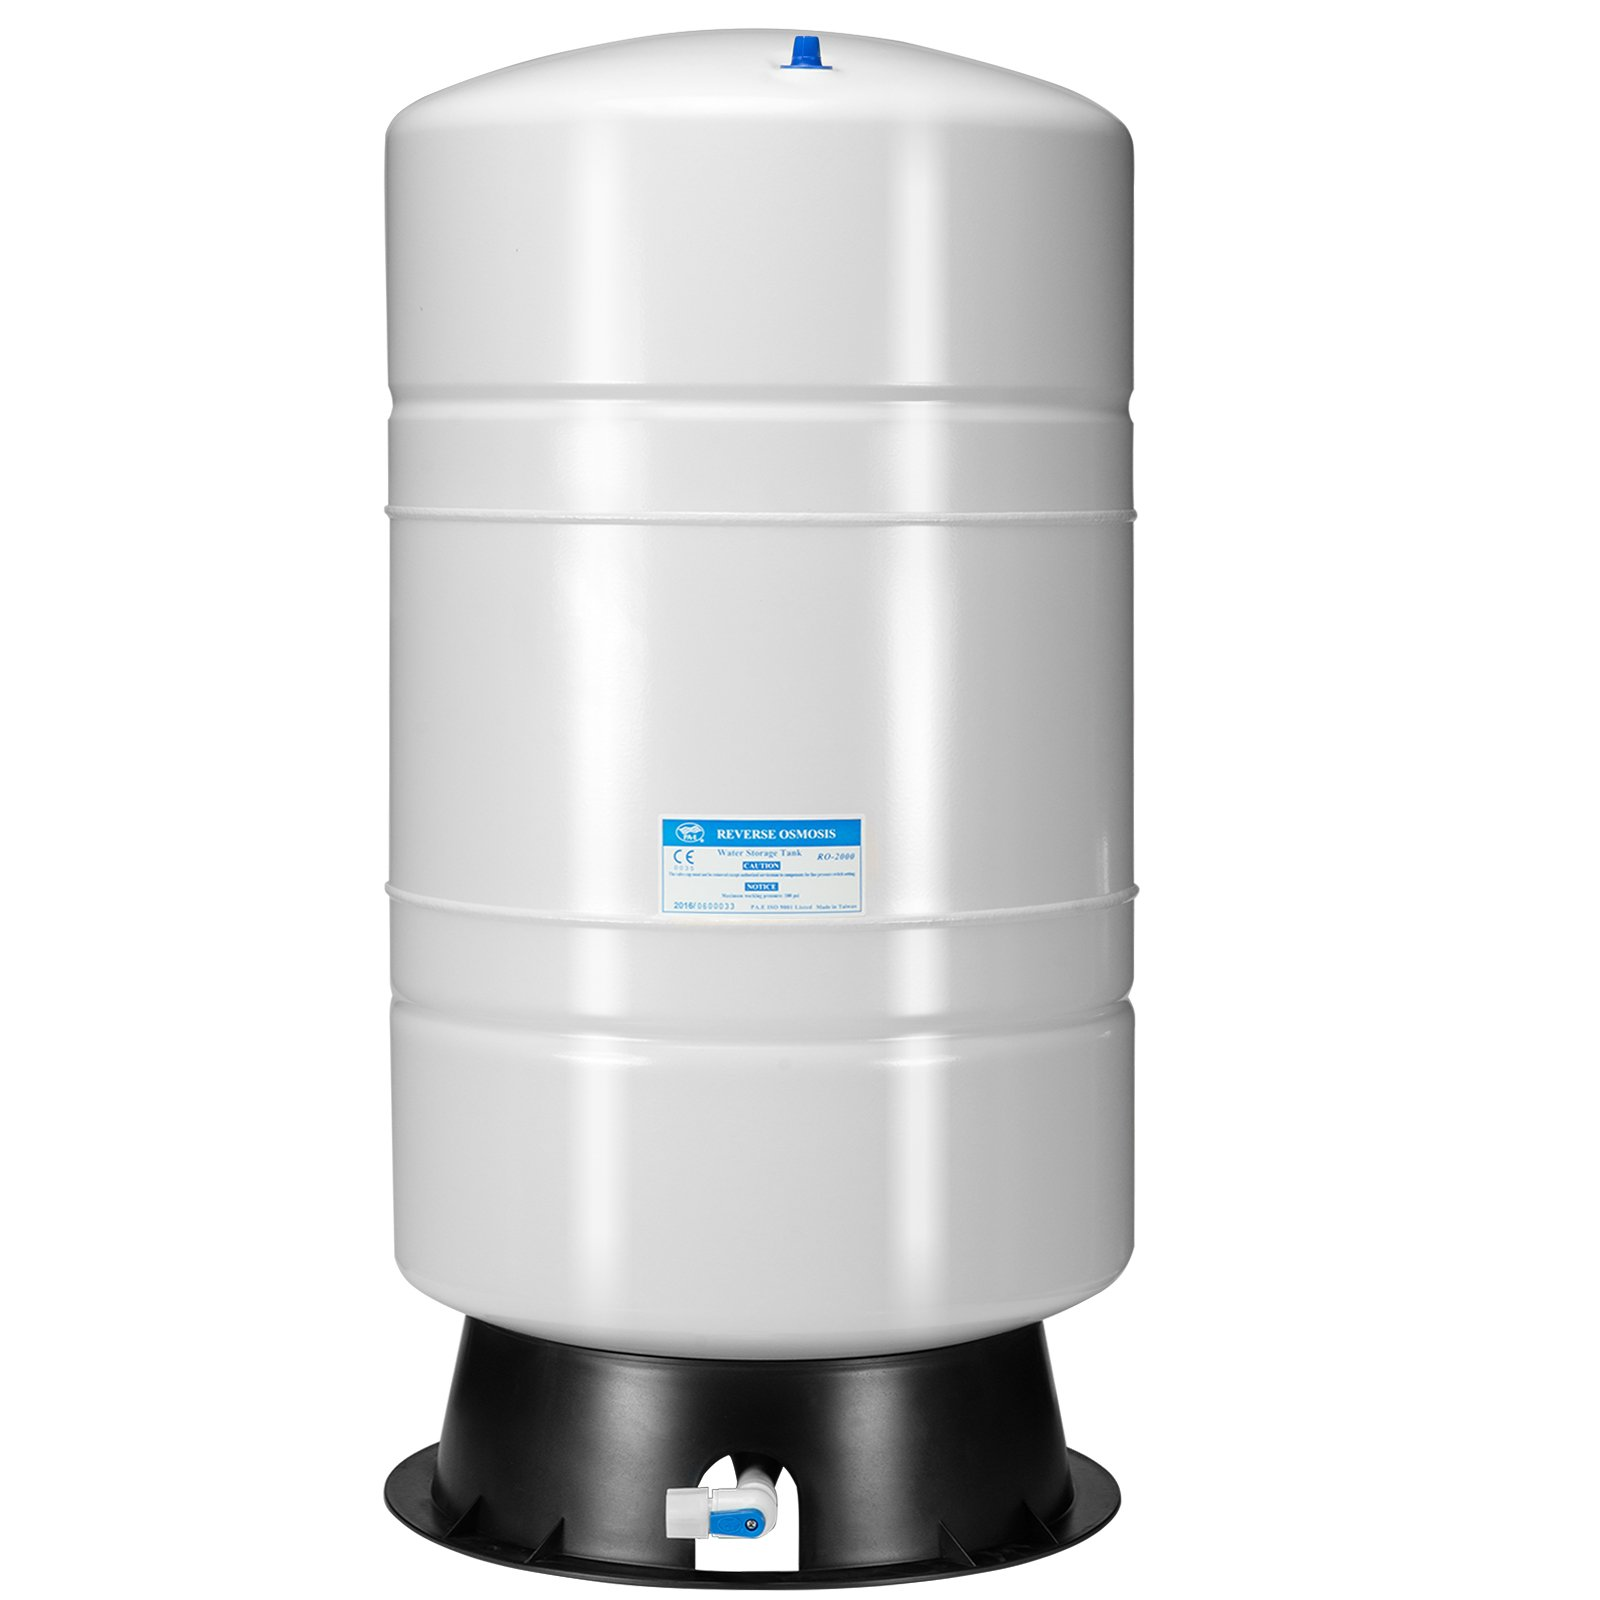 iSpring T20M 20 Gallon Water Storage Tank for Well and Reverse Osmosis RO with 14 Gallon Capacity, White by iSpring